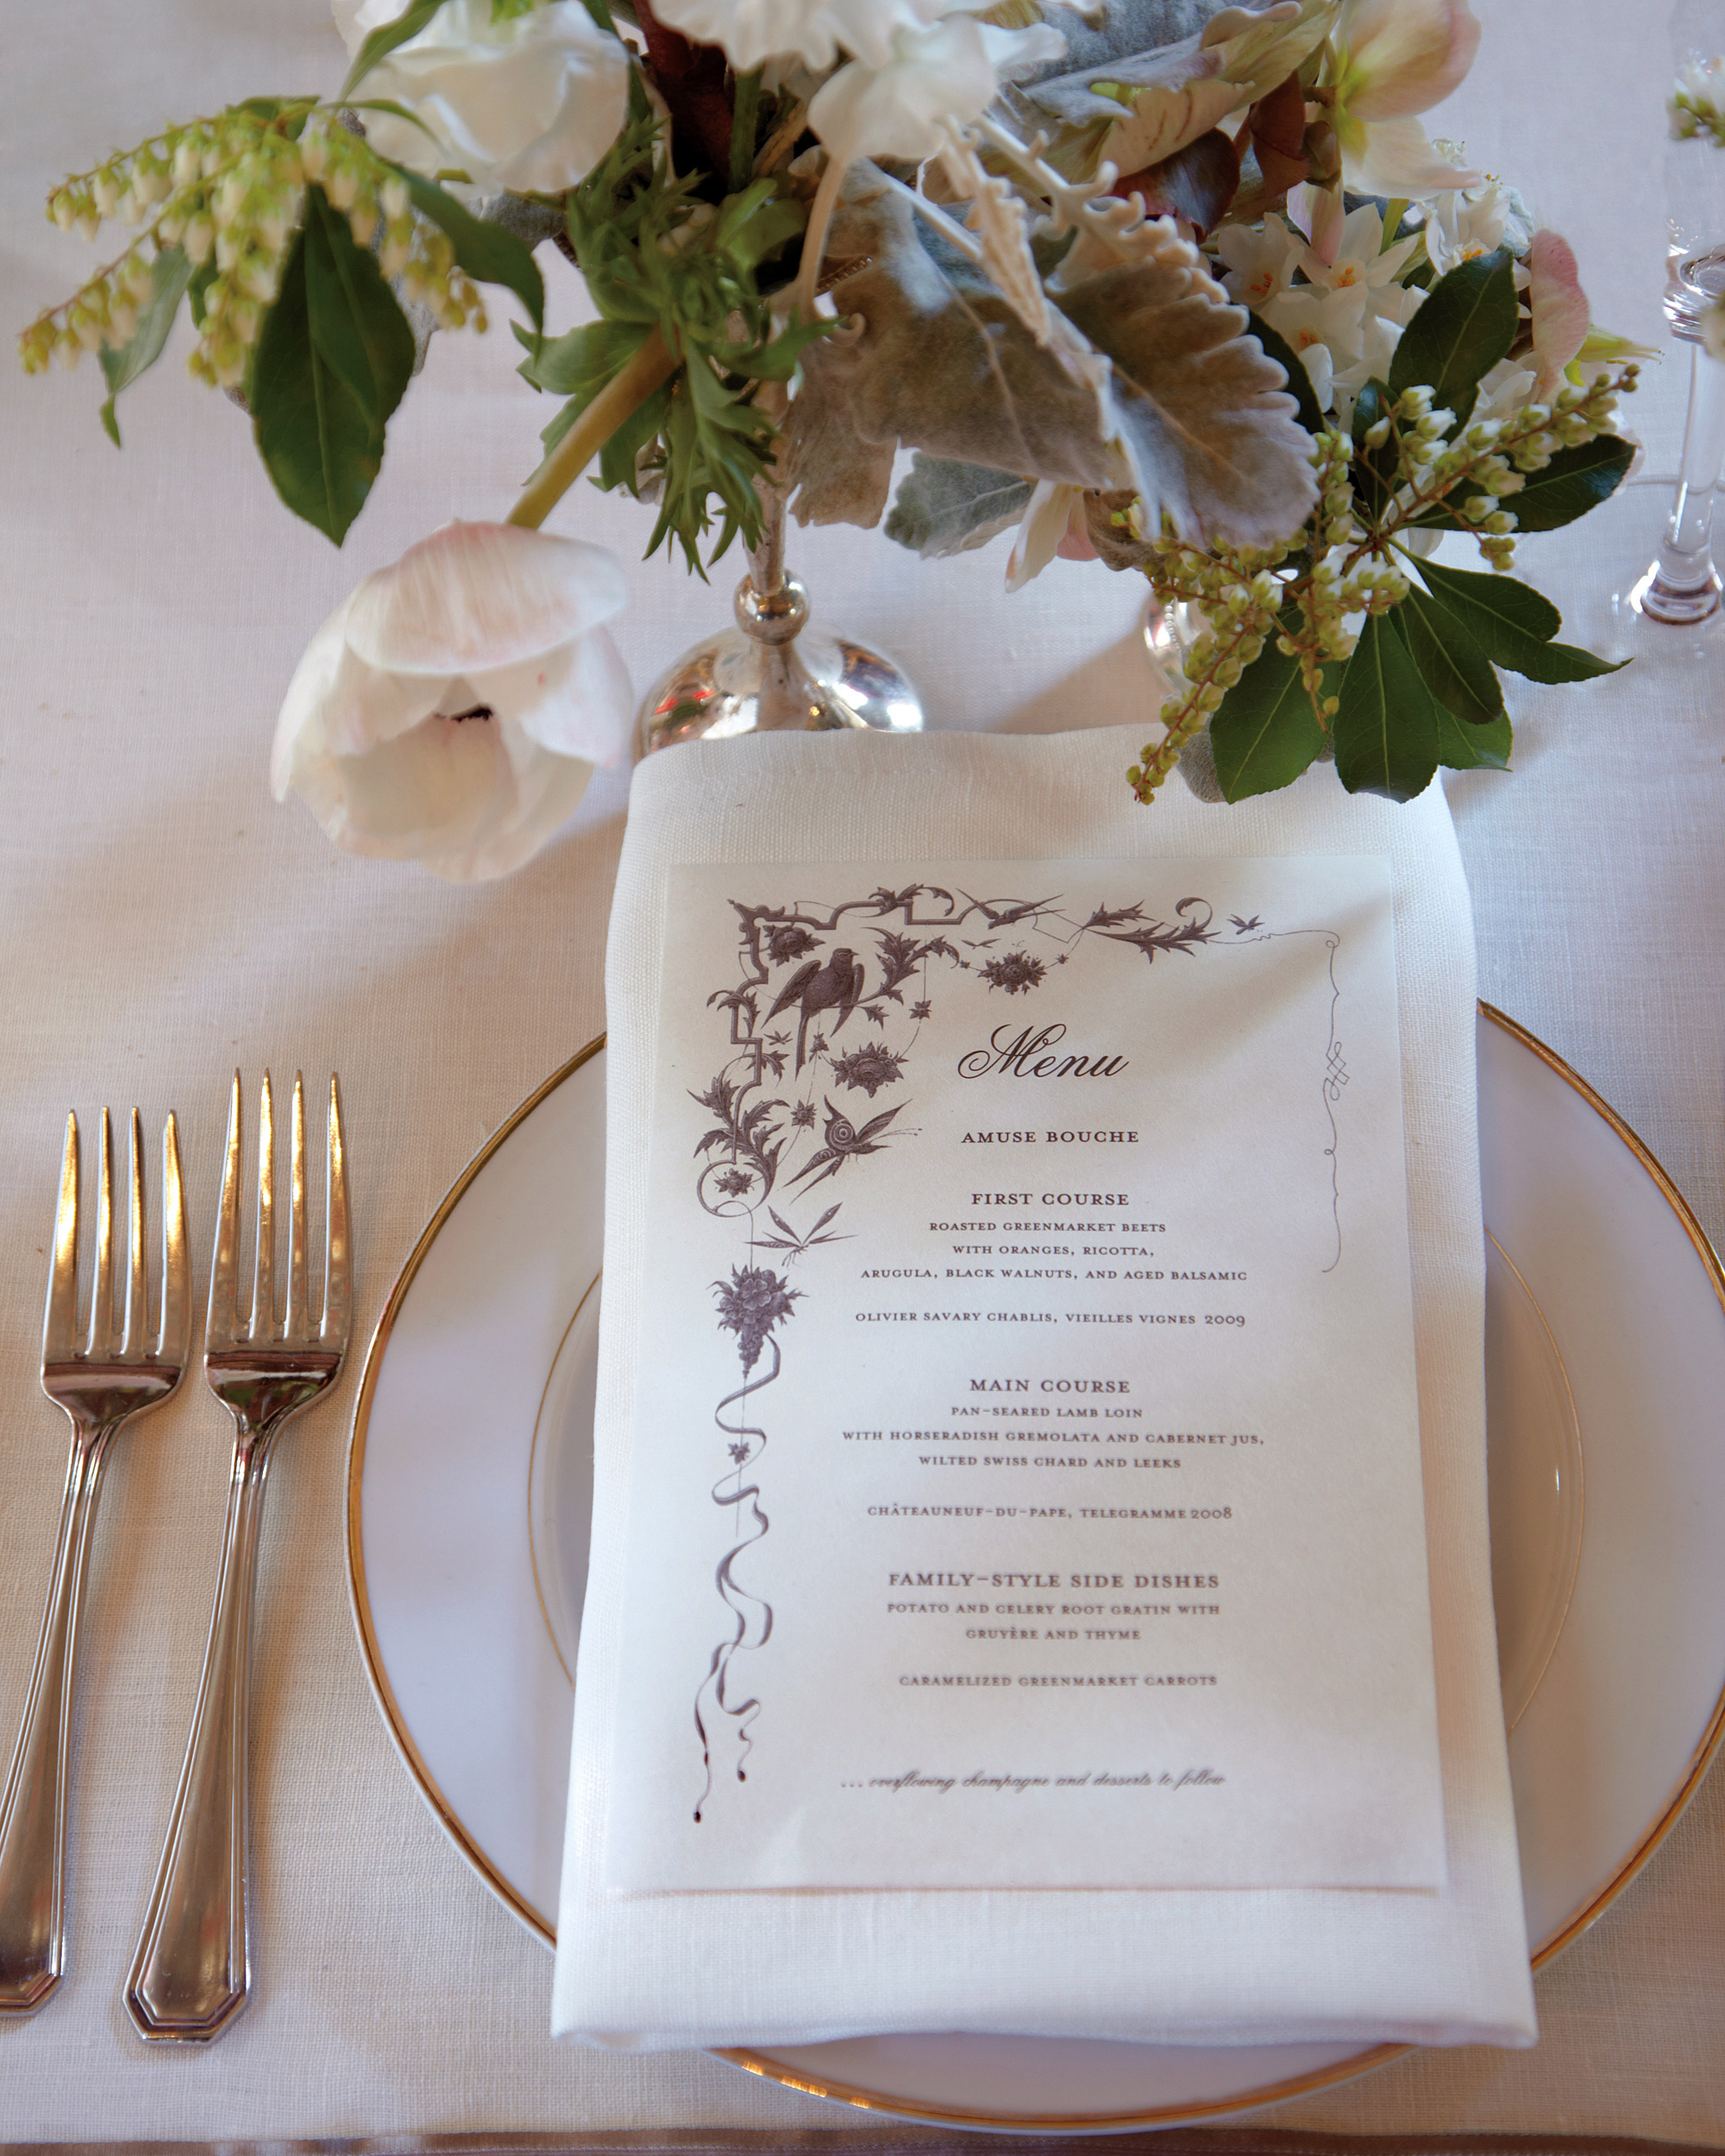 The Menus